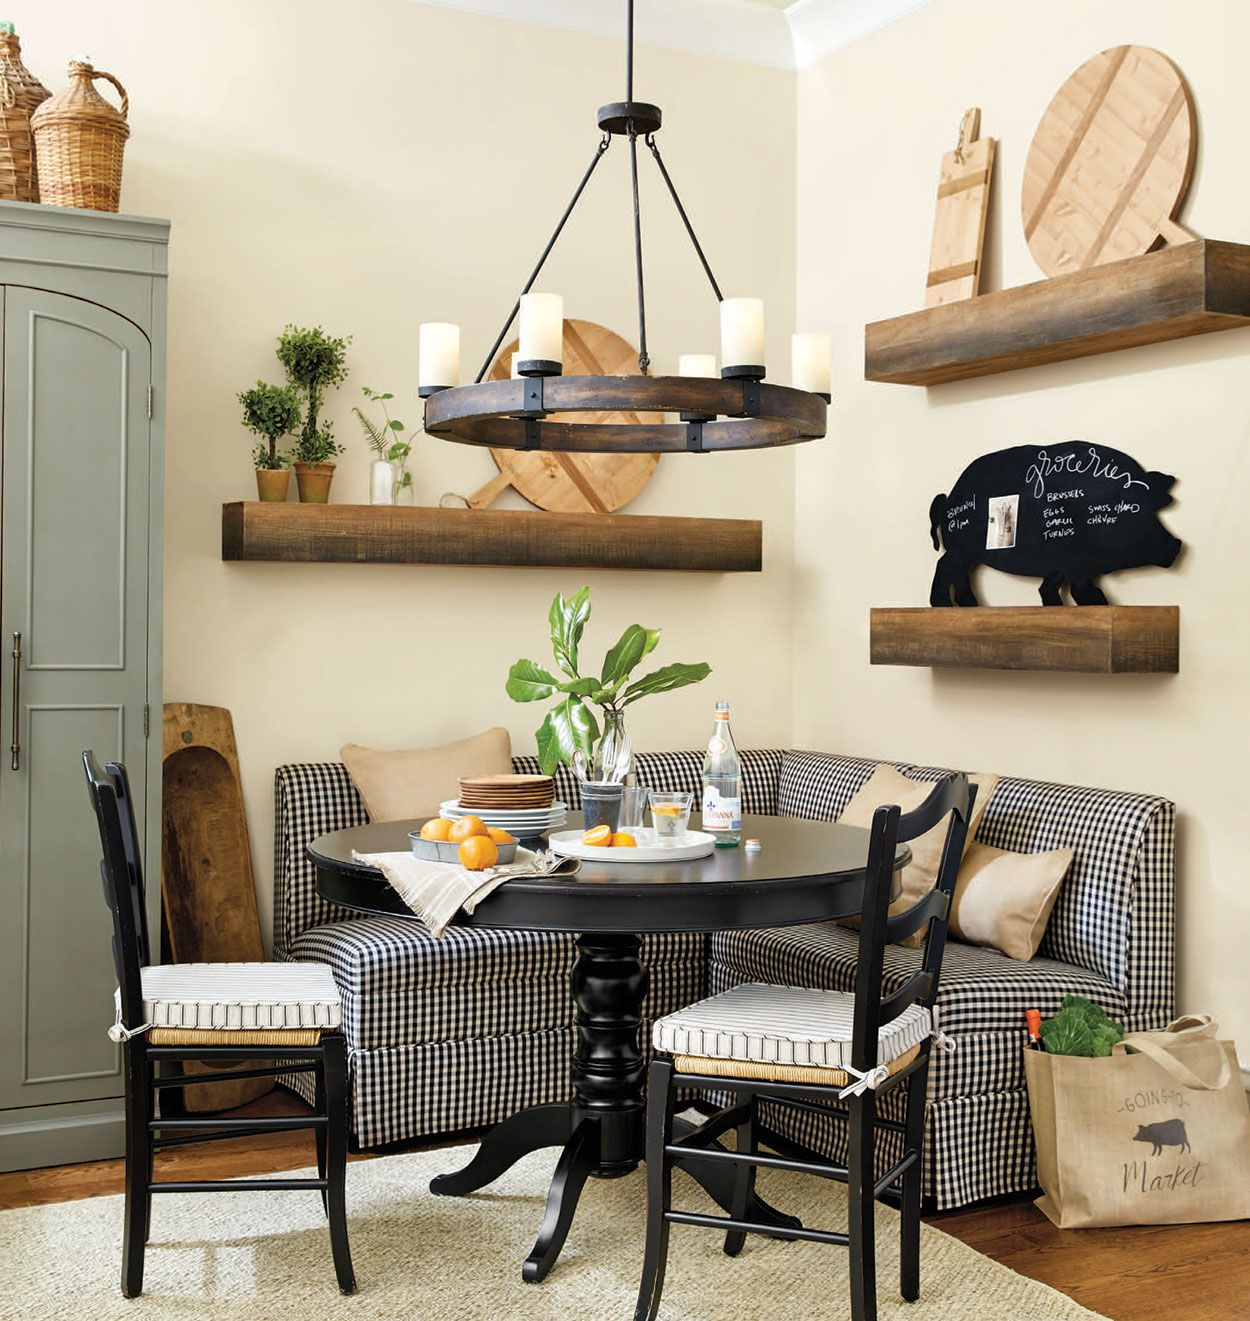 21 Corner Dining Sets Designs Decorating Ideas: Dining Room Decorating Ideas